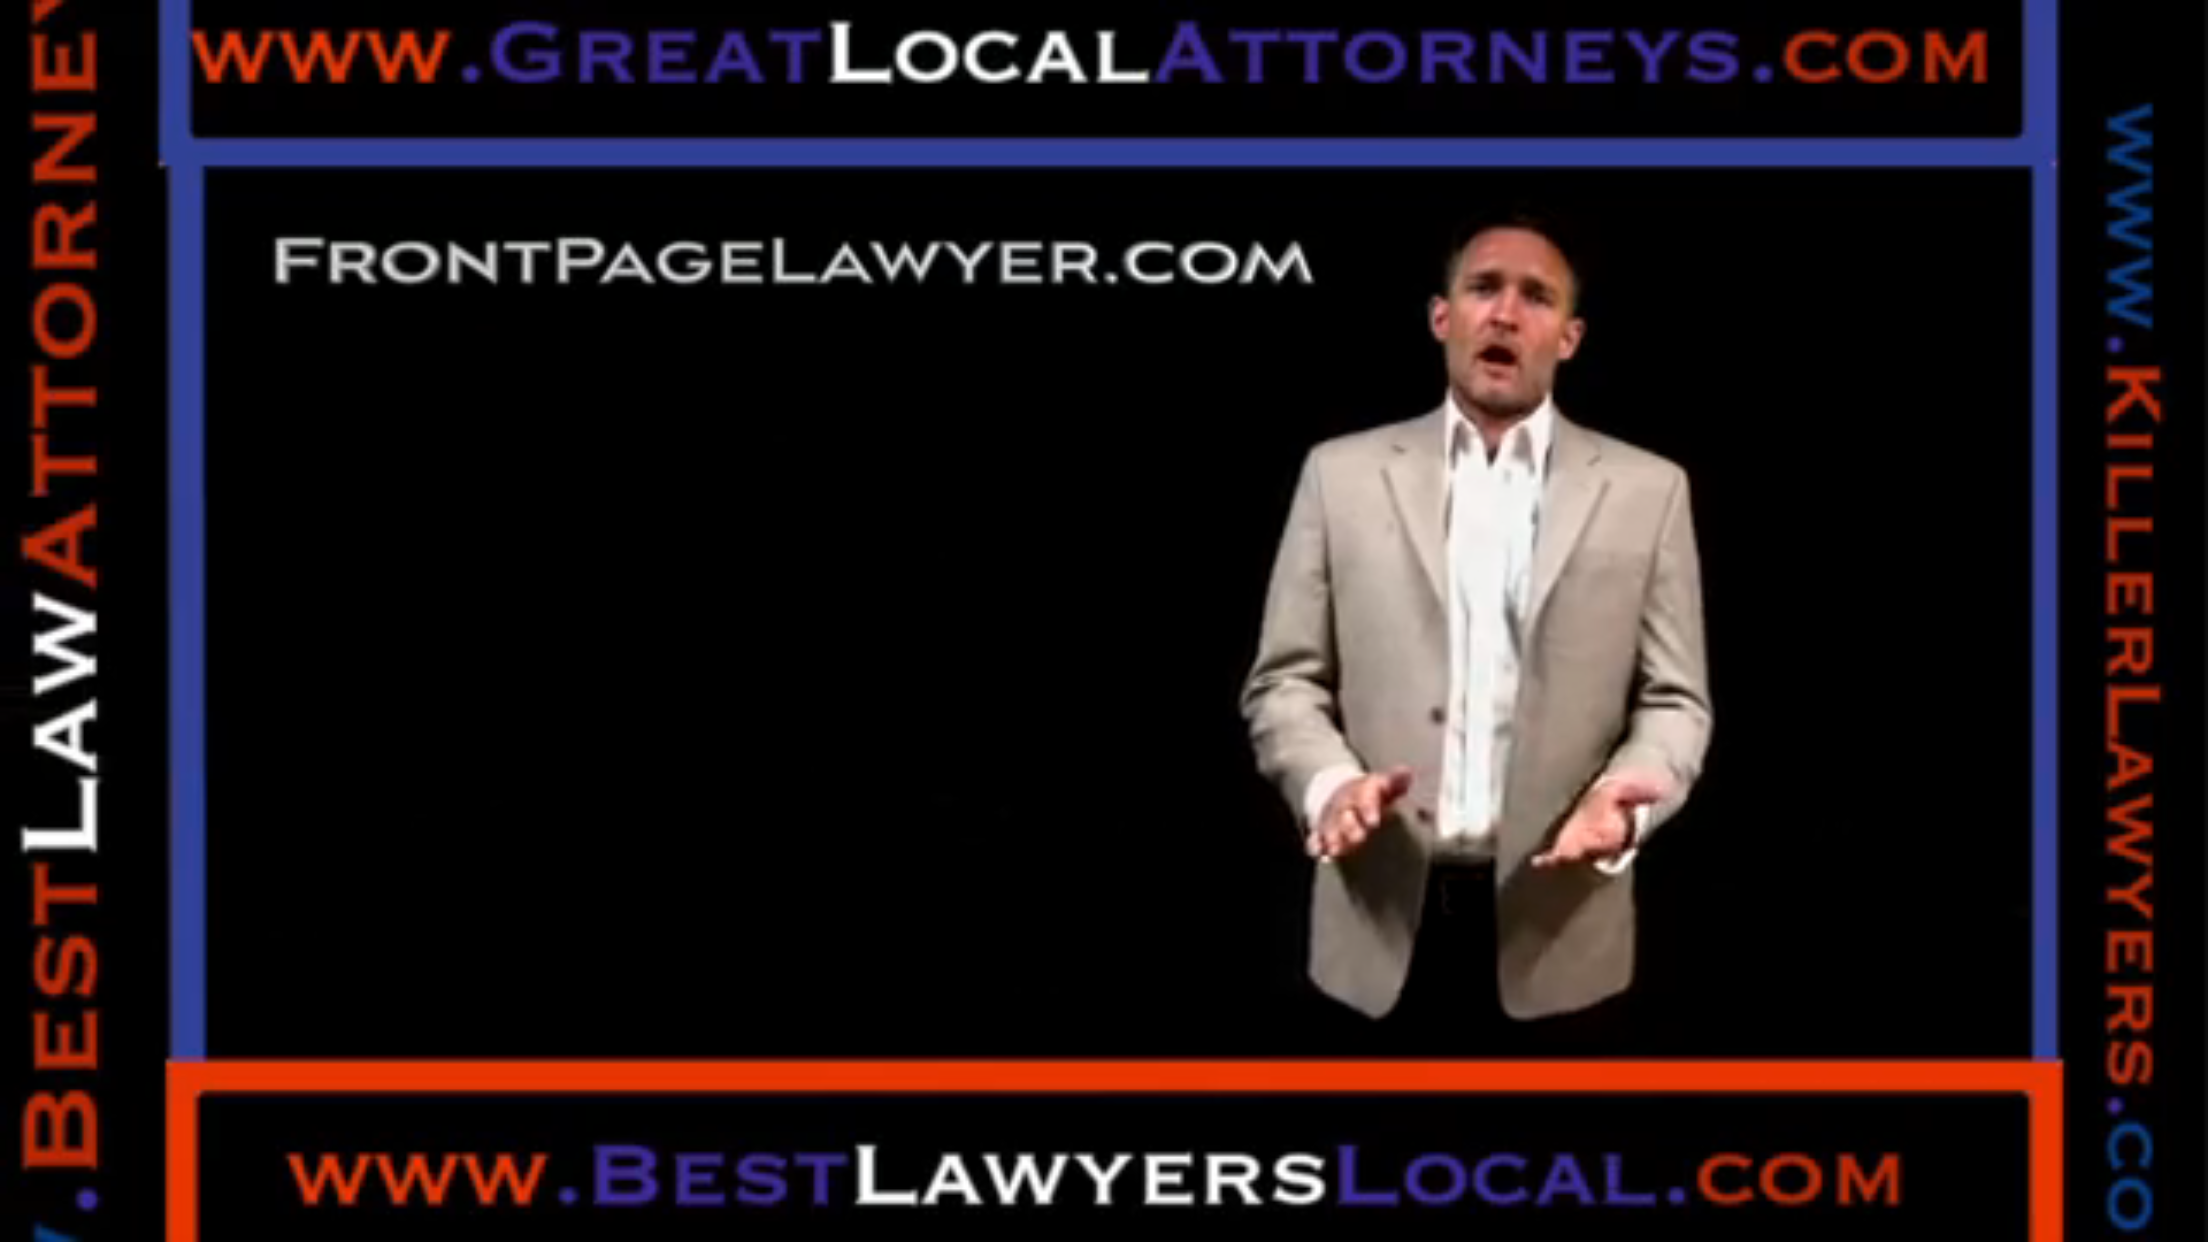 Wrongful death lawyers, wrongful death lawyer, Phoenix wrongful death lawyer, wrongful death lawyer phoenix, wrongful death lawyer phoenix Arizona